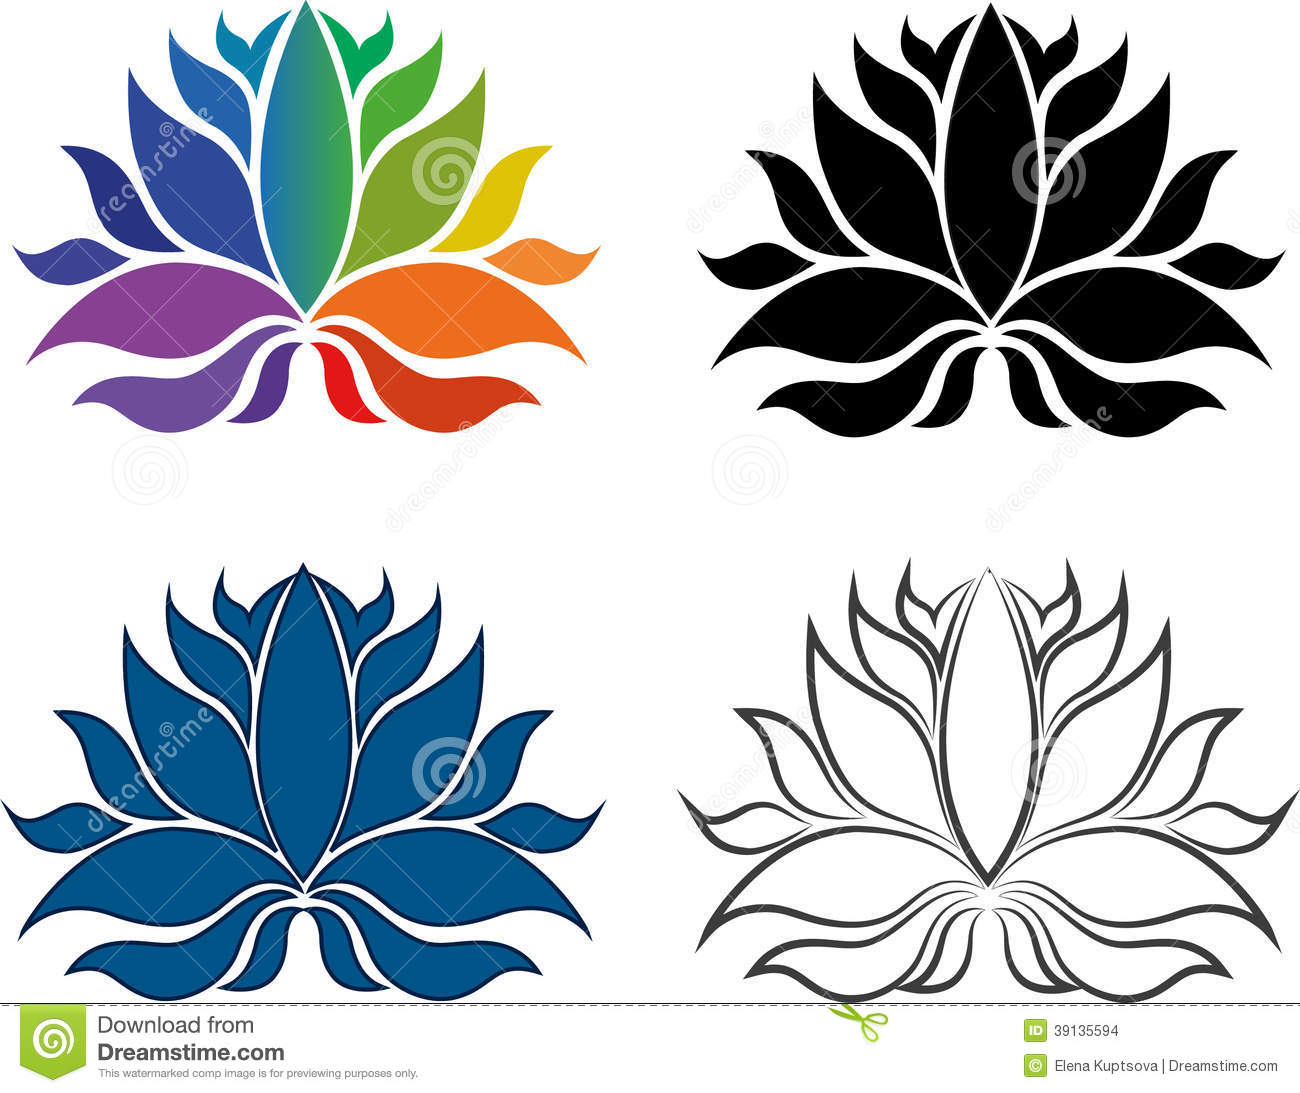 Abstract Design Clipart At Getdrawings Free For Personal Use